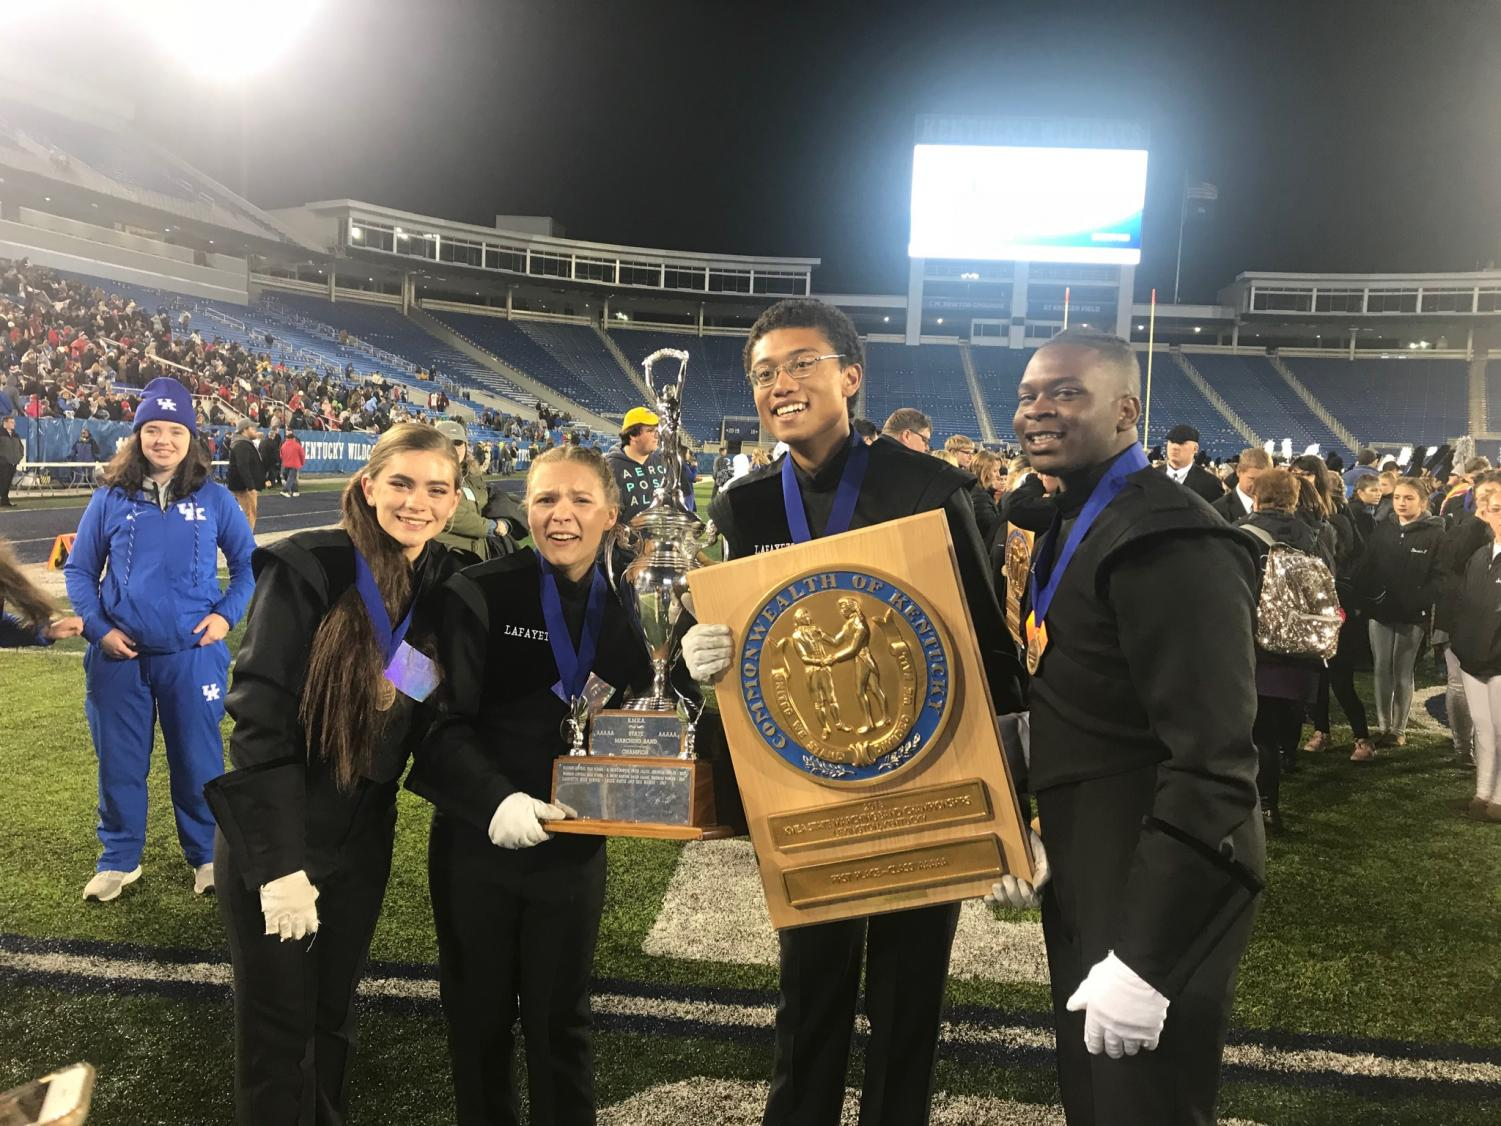 Starting from the left: Shannon James, Kate Manno, Casey Trowel, and  Ni'Kerrion McDonald, the Lafayette band drum majors.